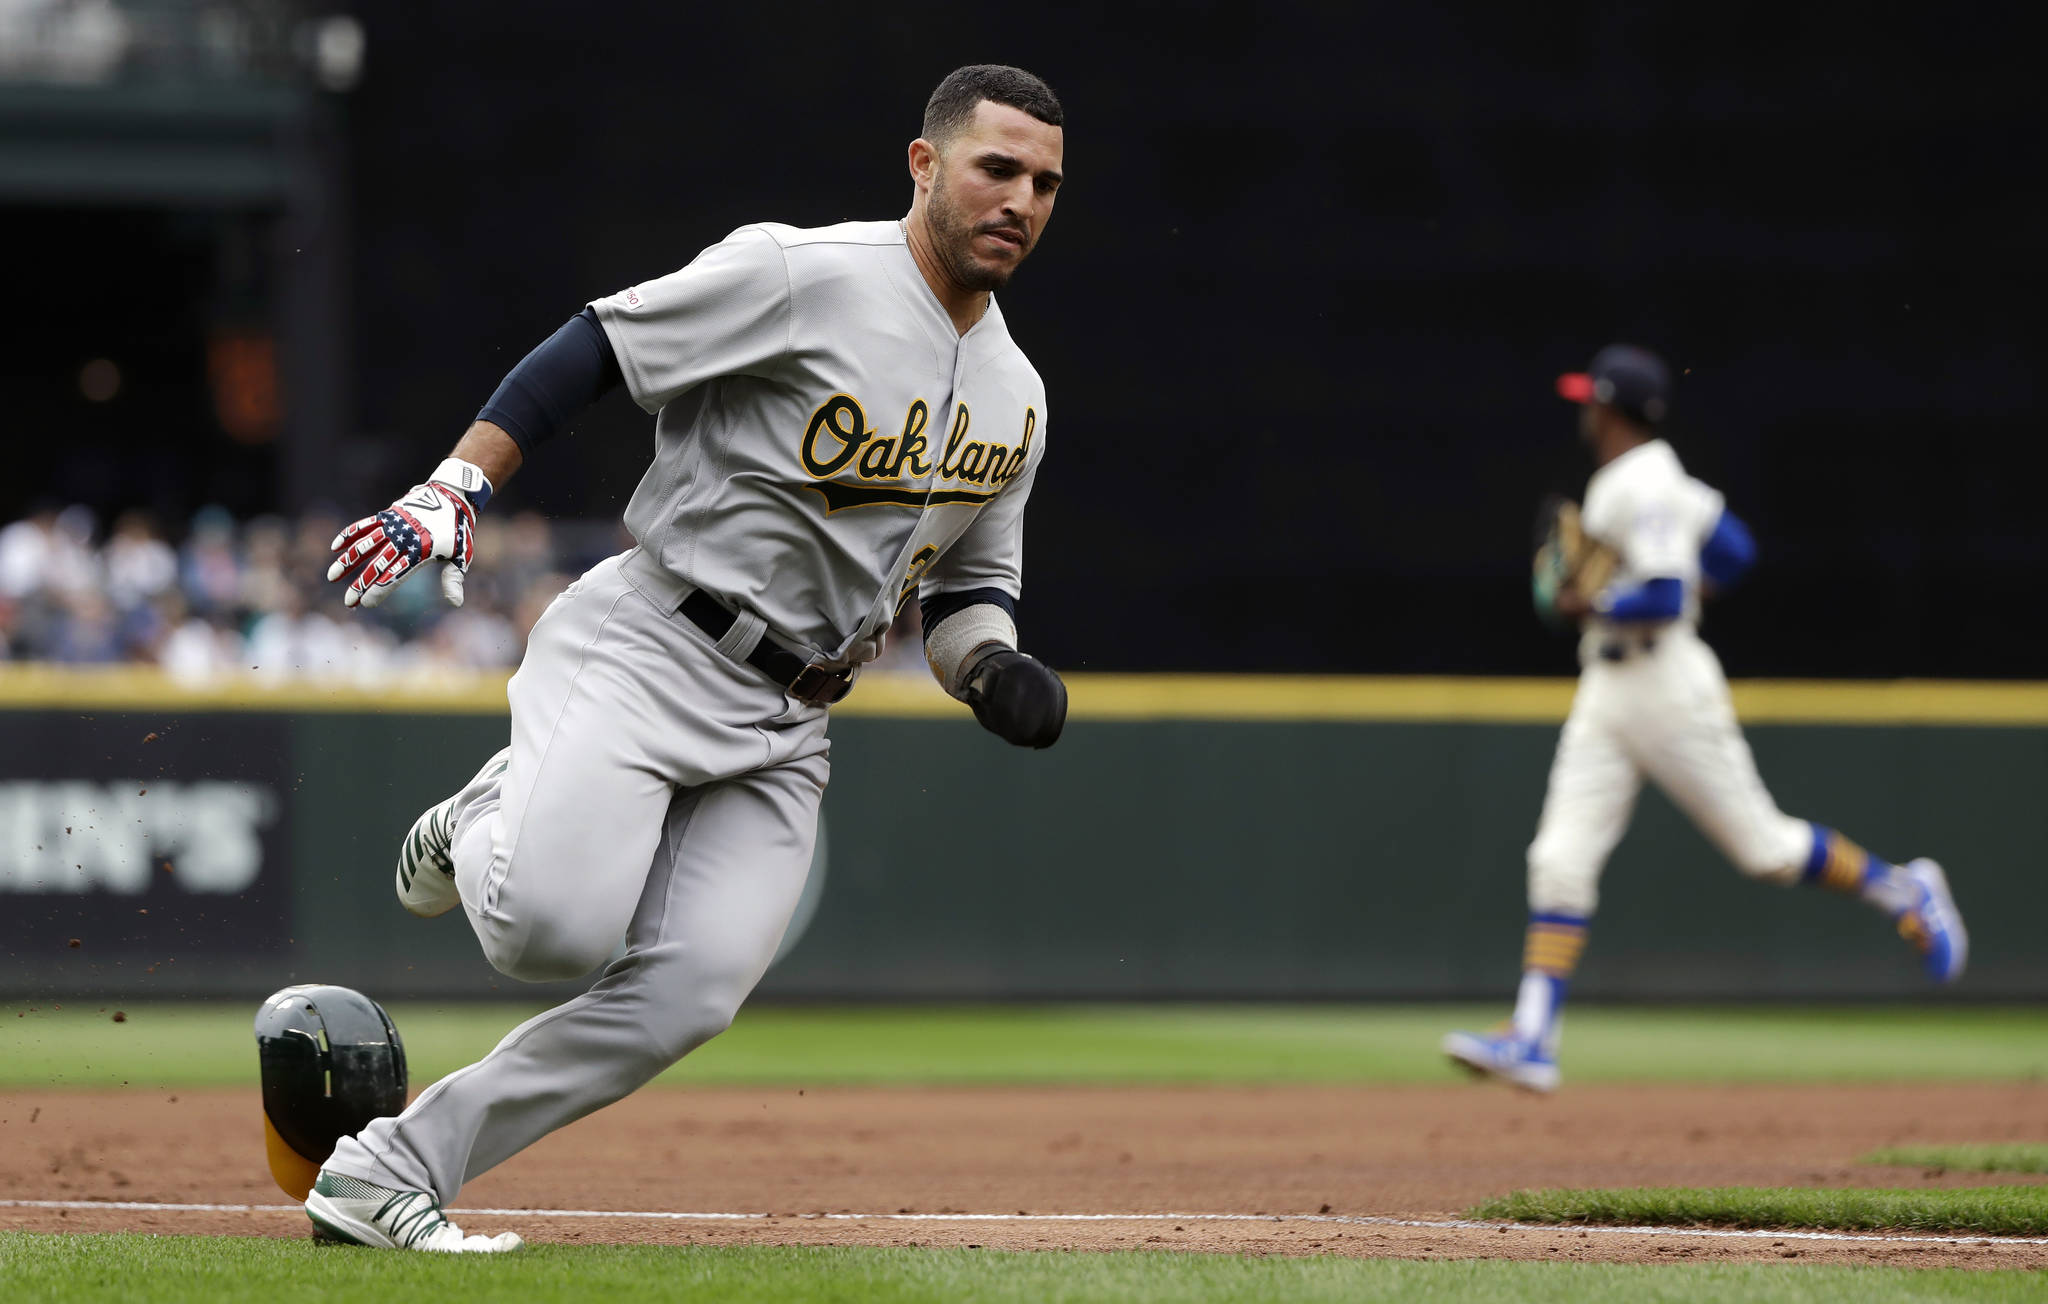 Oakland's Ramon Laureano races home to score against the Seattle Mariners in the first inning of Sunday's game at T-Mobile Park in Seattle. (AP Photo/Elaine Thompson)